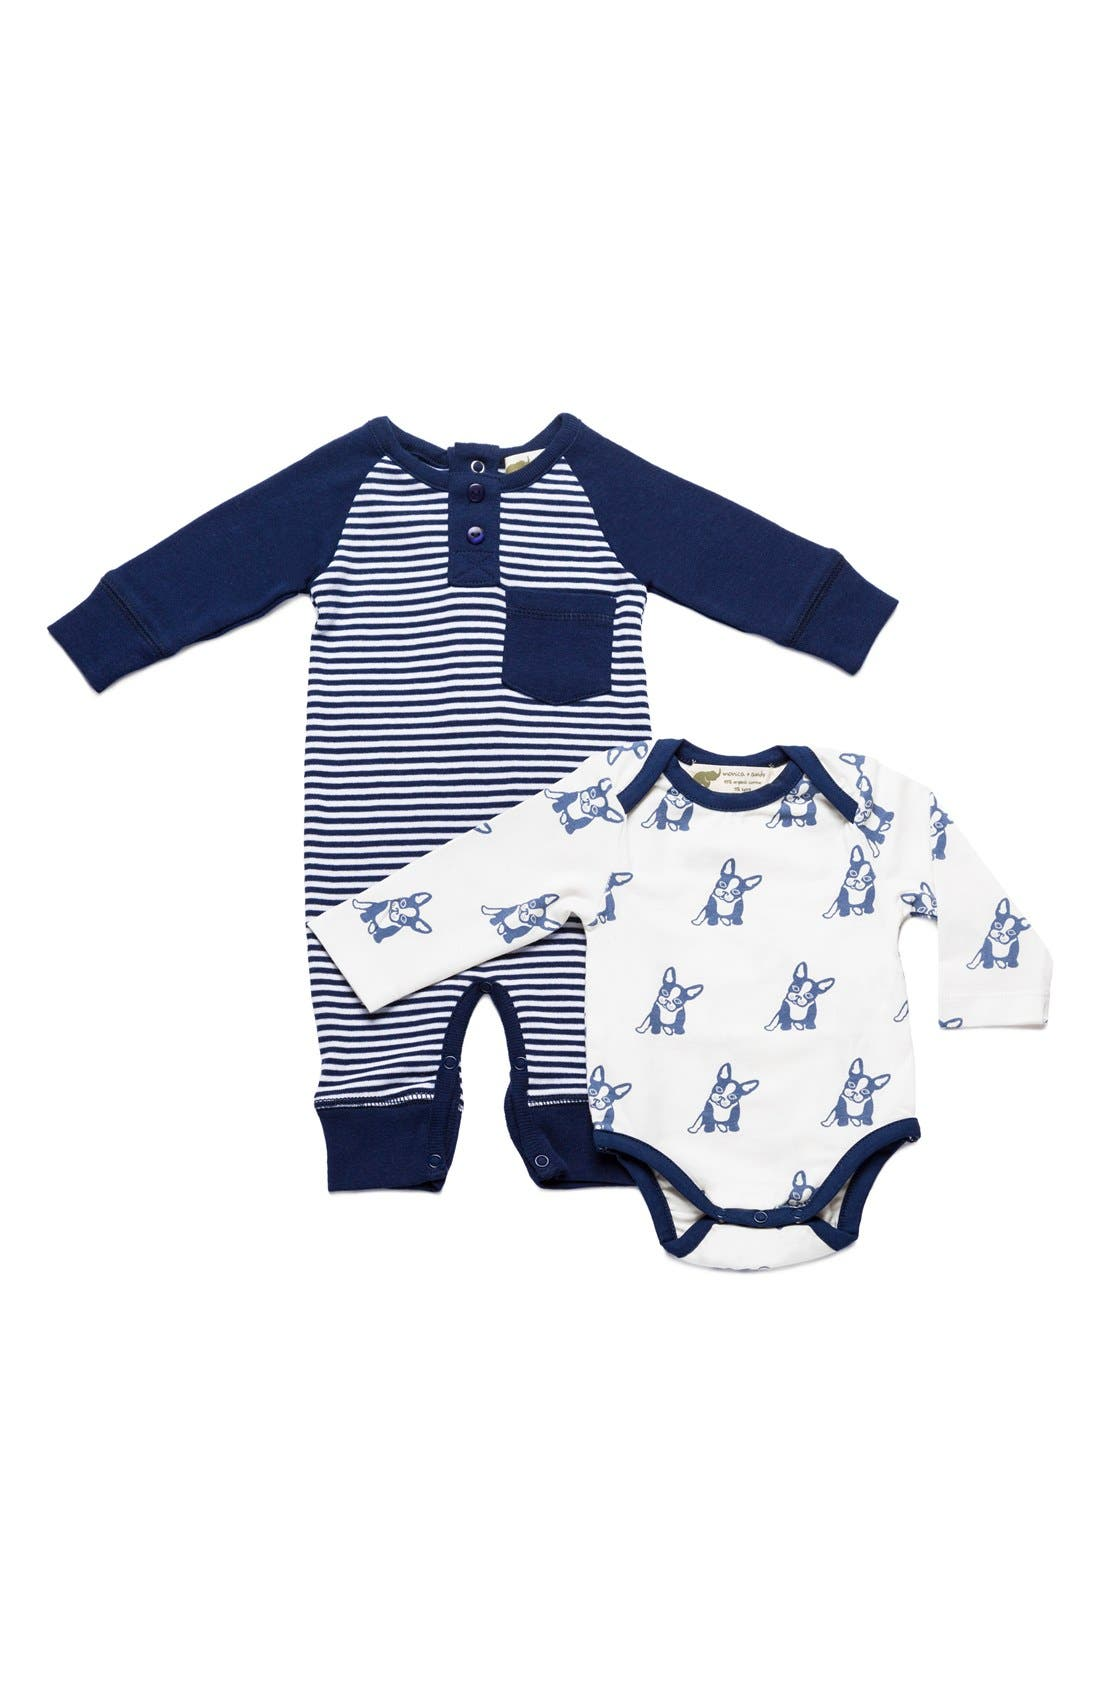 Jack & Jill Top Dog Bodysuit & Dylan Romper Set, Main, color, 400